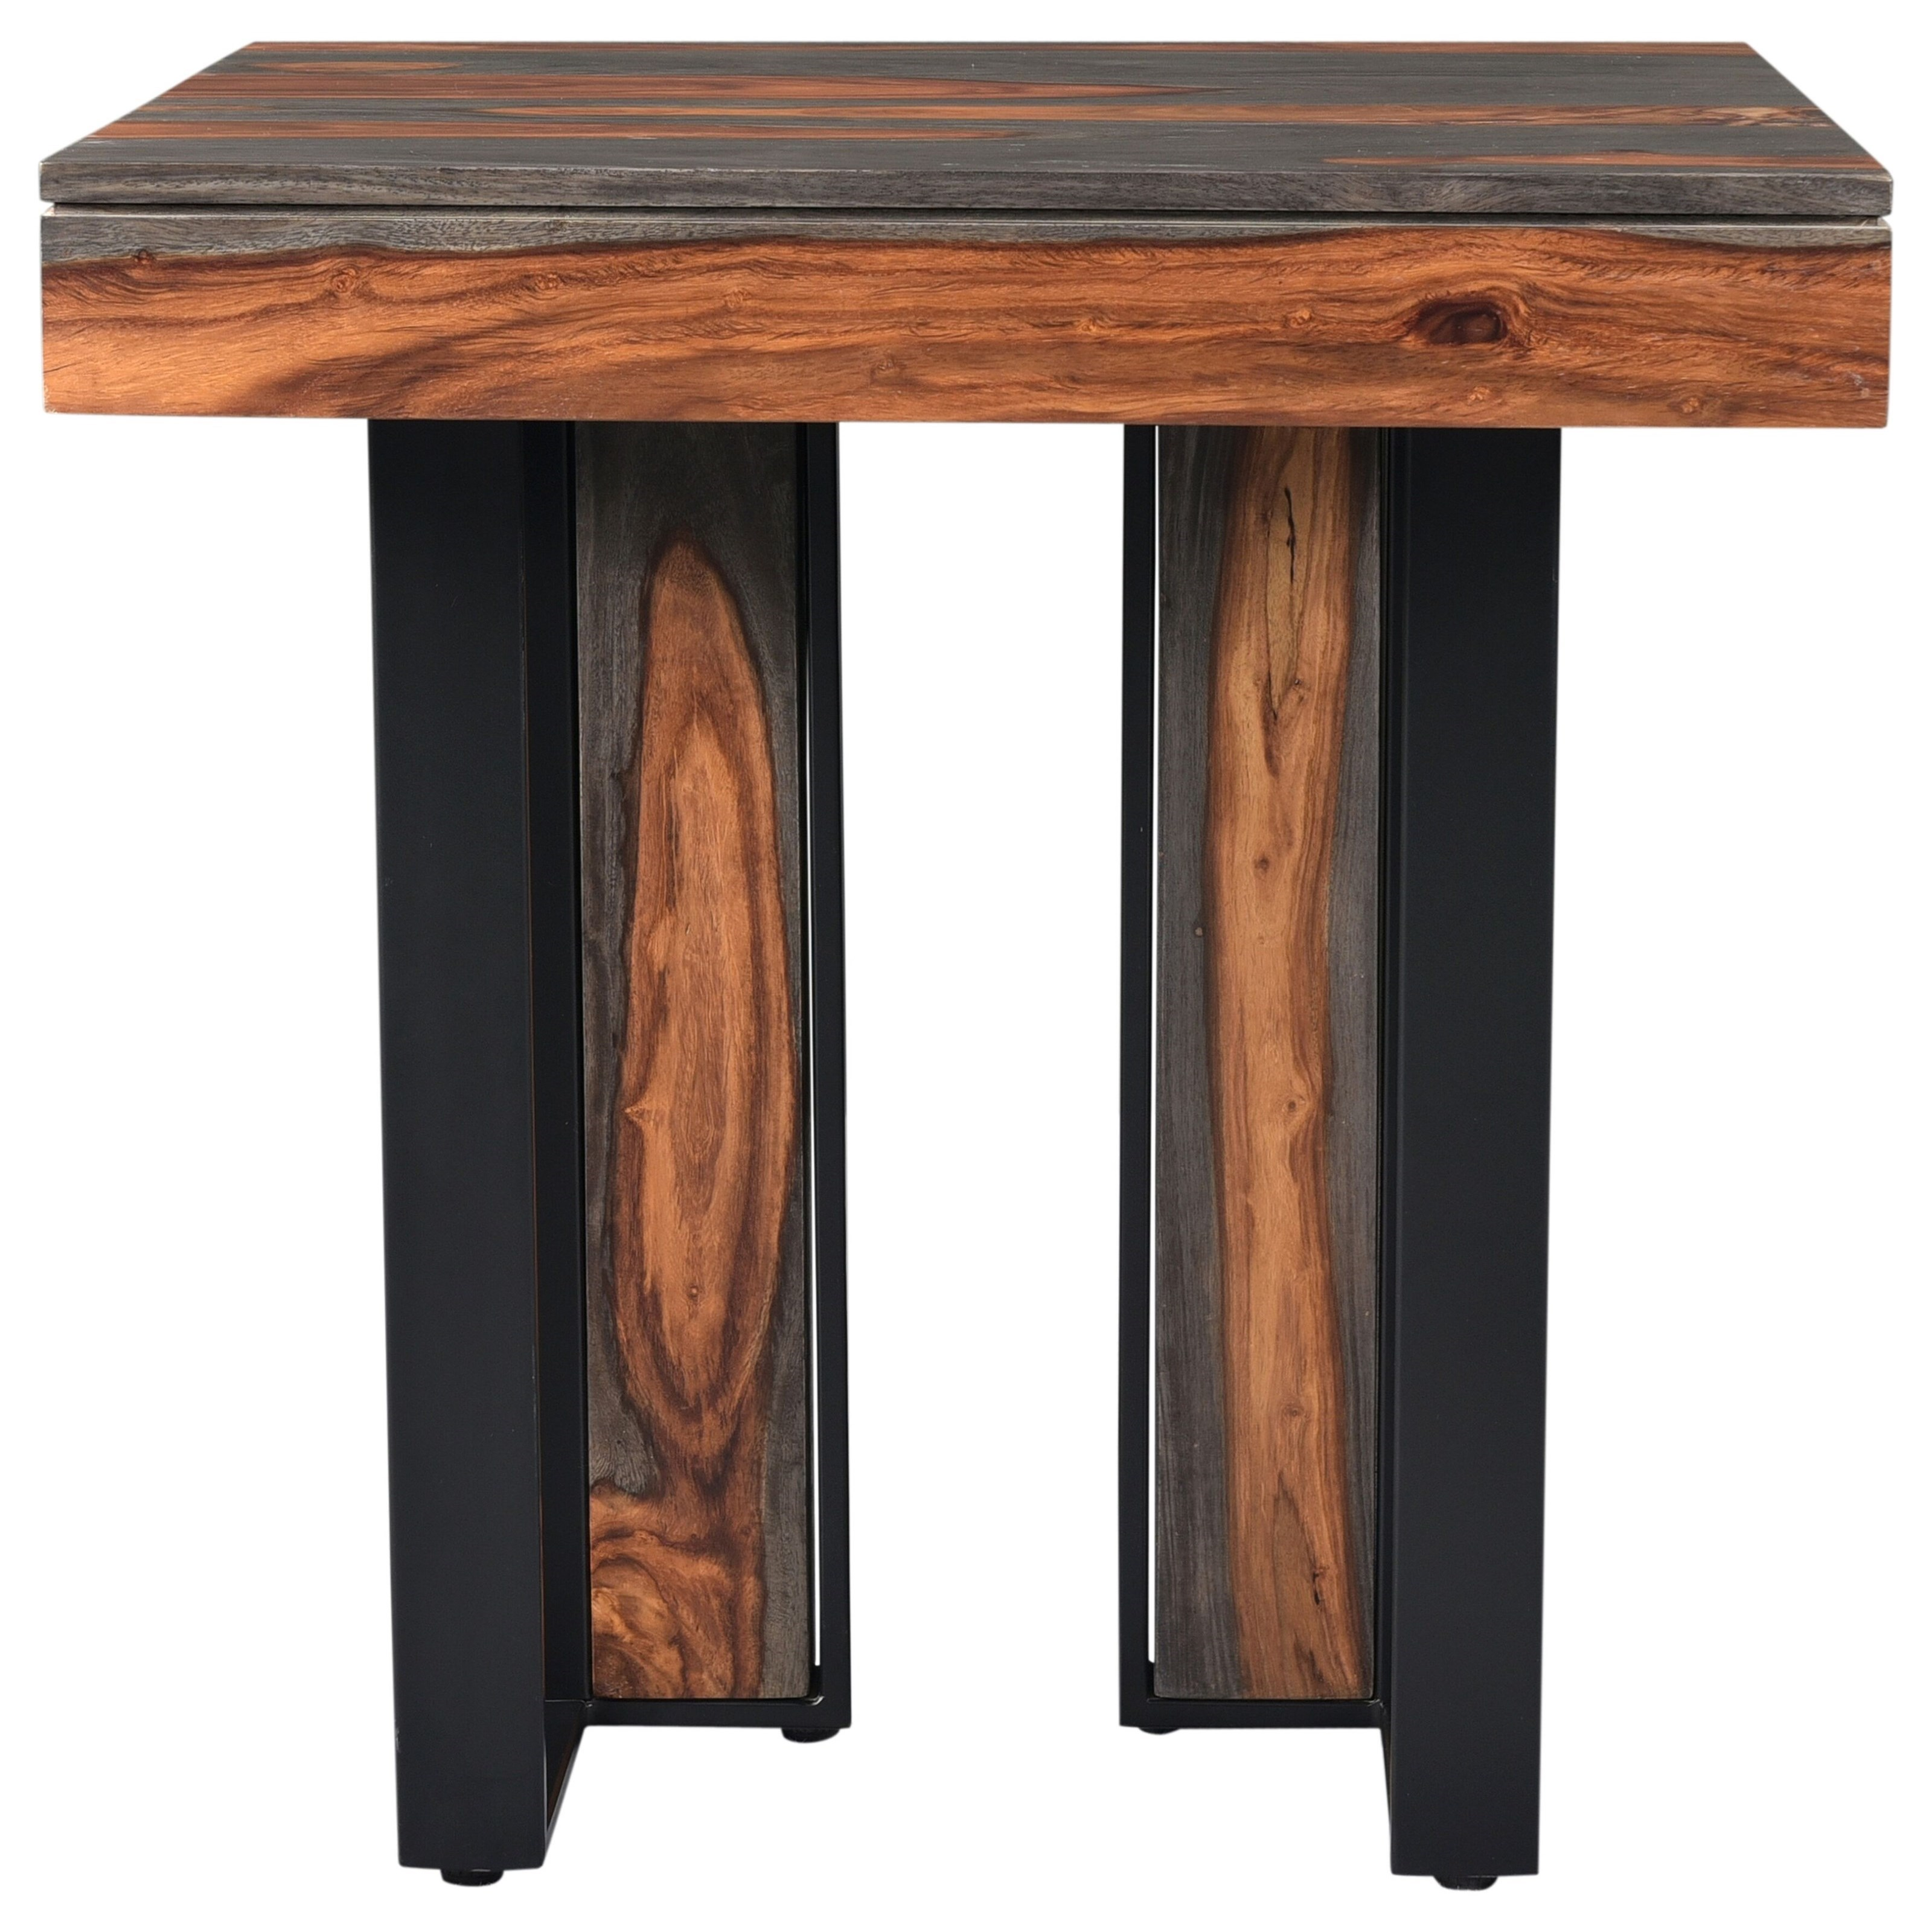 Sierra End Table by Coast to Coast Imports at Corner Furniture